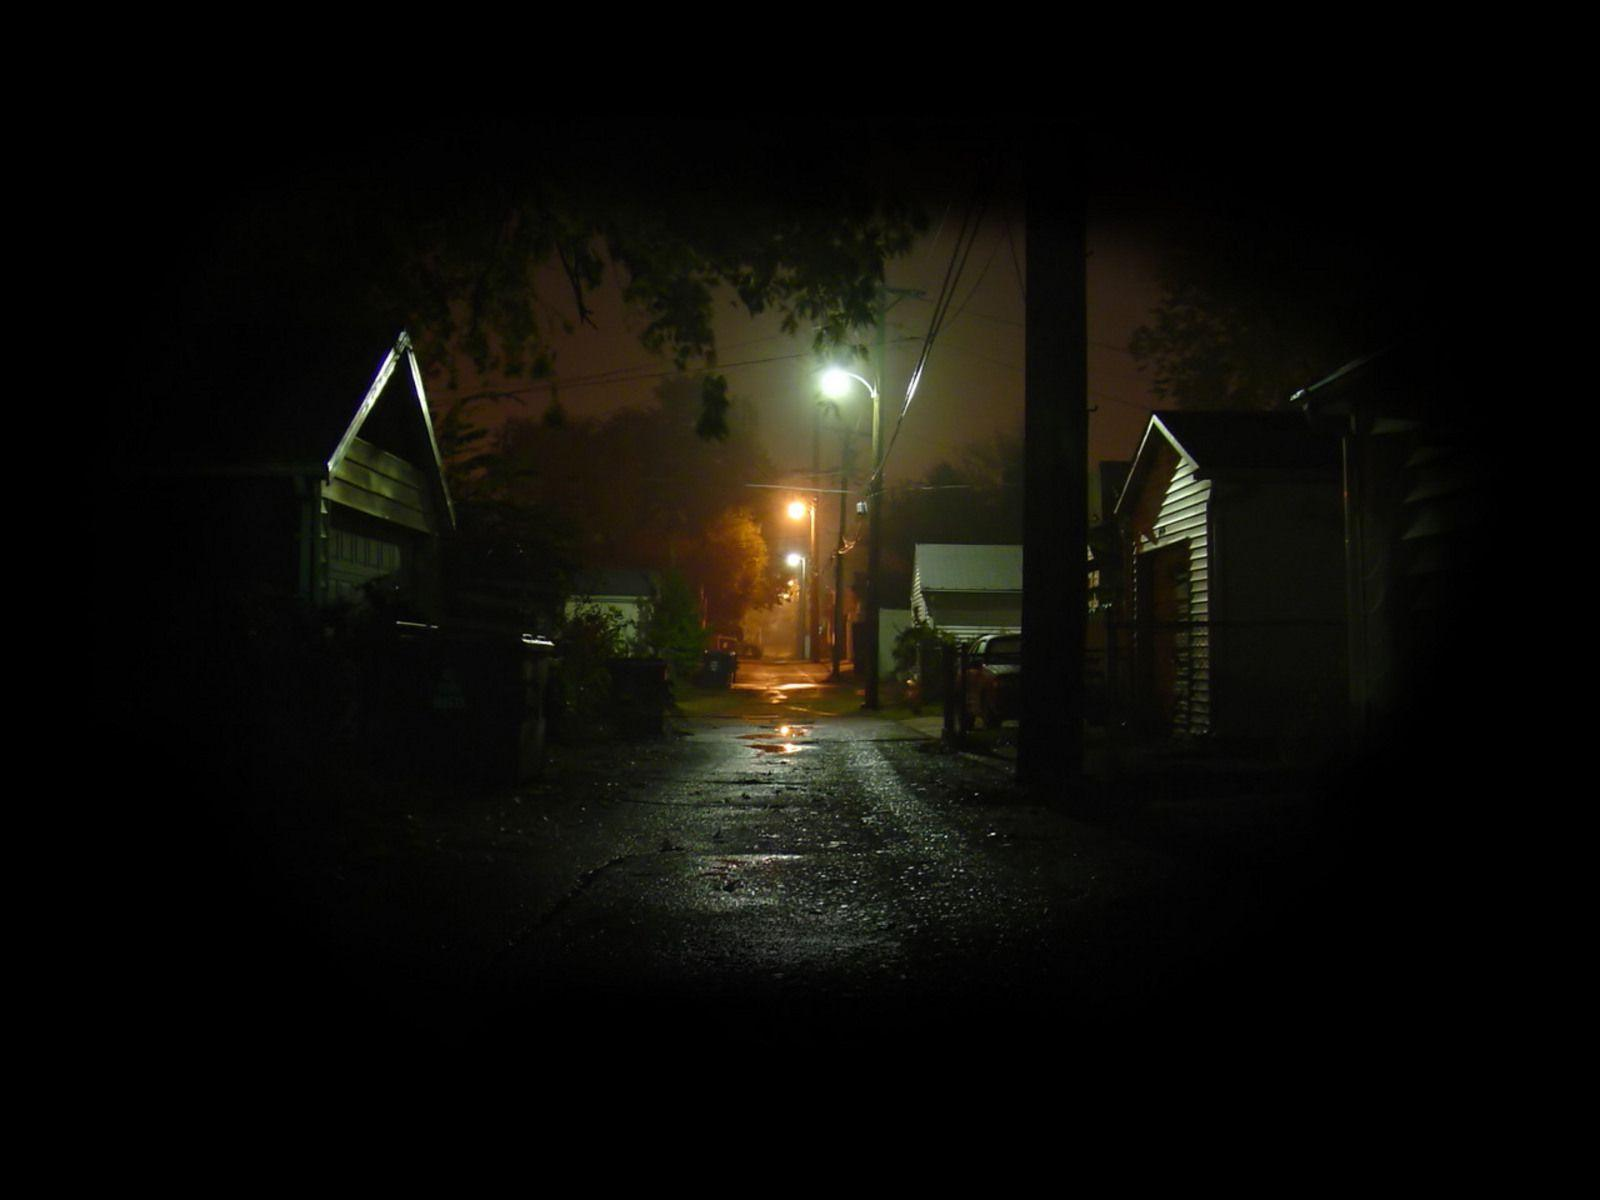 streets, dark, night, street lights, Alley, garages :: Wallpapers